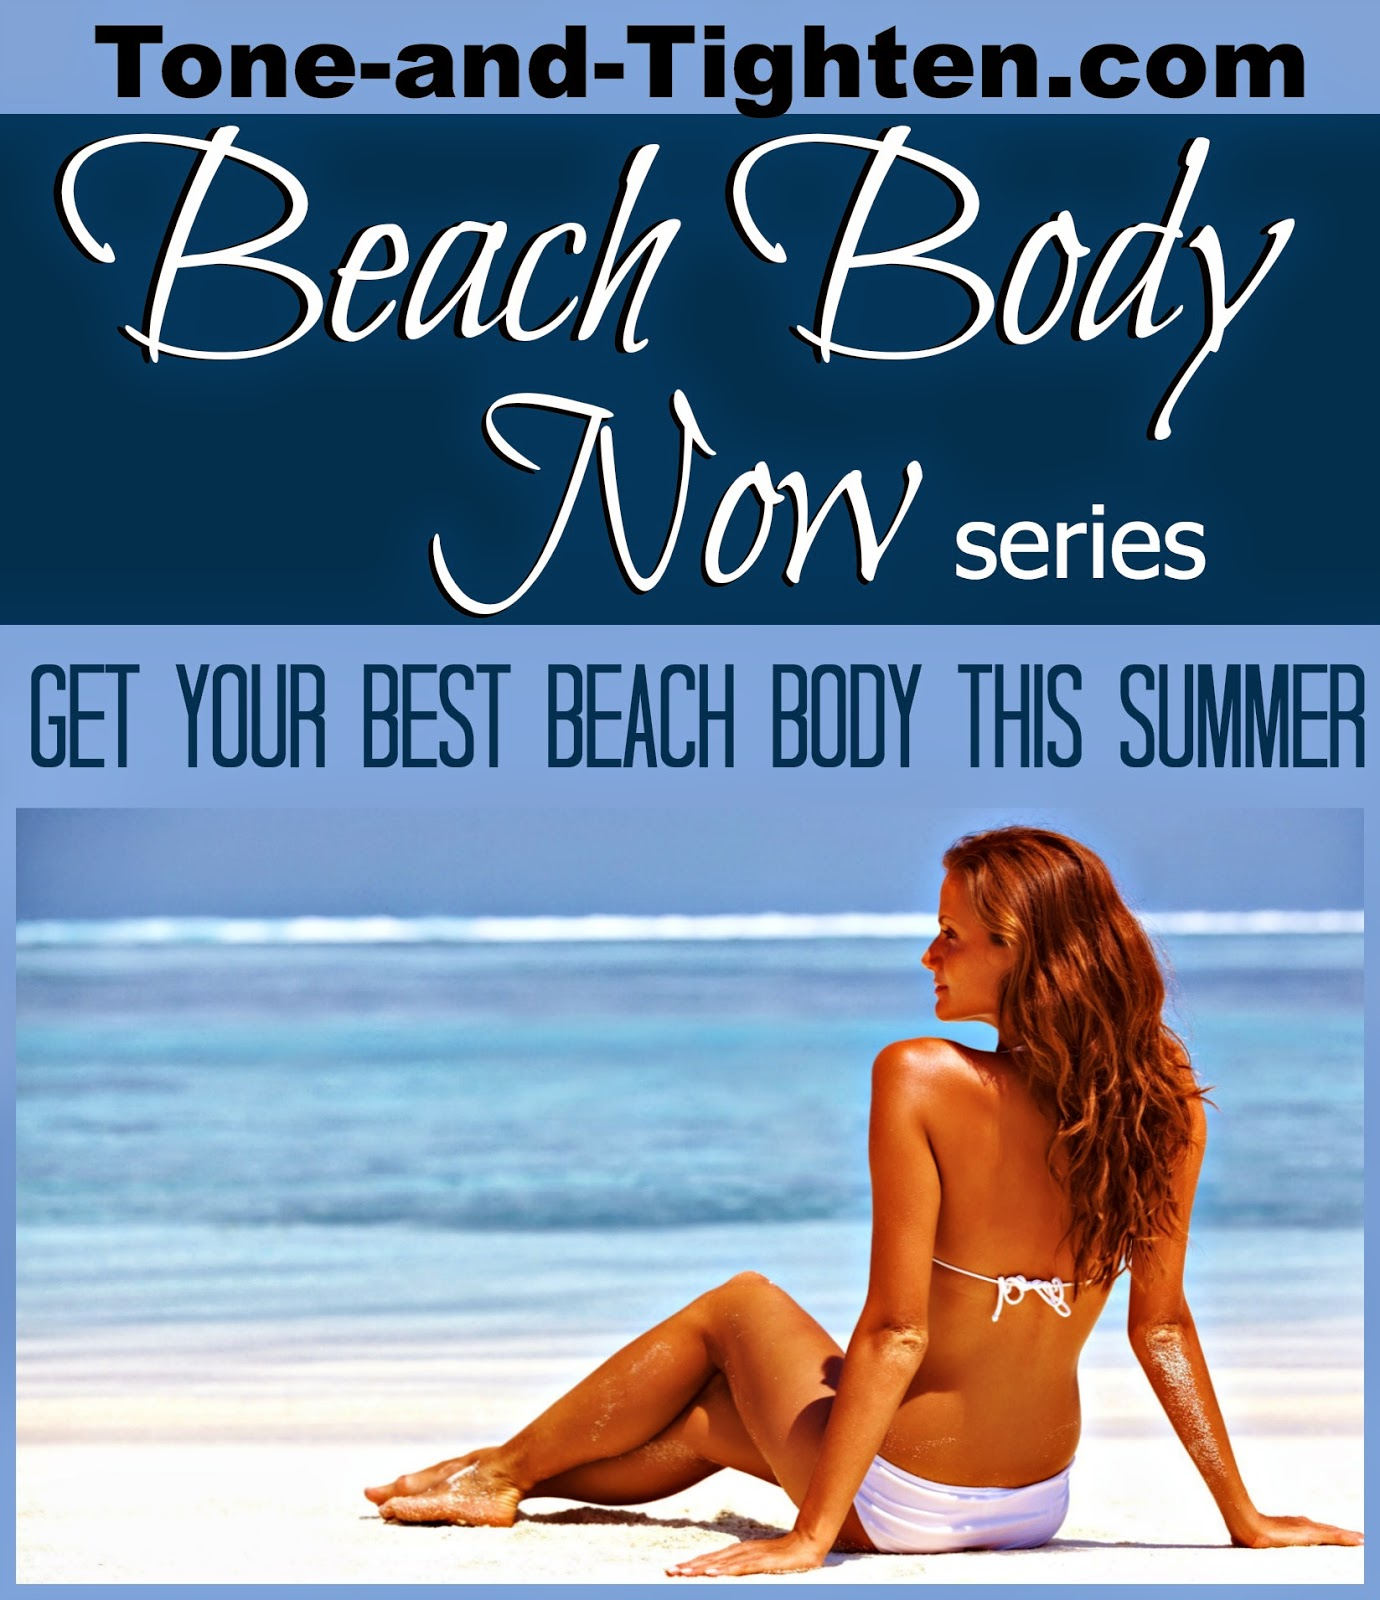 https://tone-and-tighten.com/2014/04/beach-body-now-week-3-get-the-body-of-your-dreams-this-summer.html